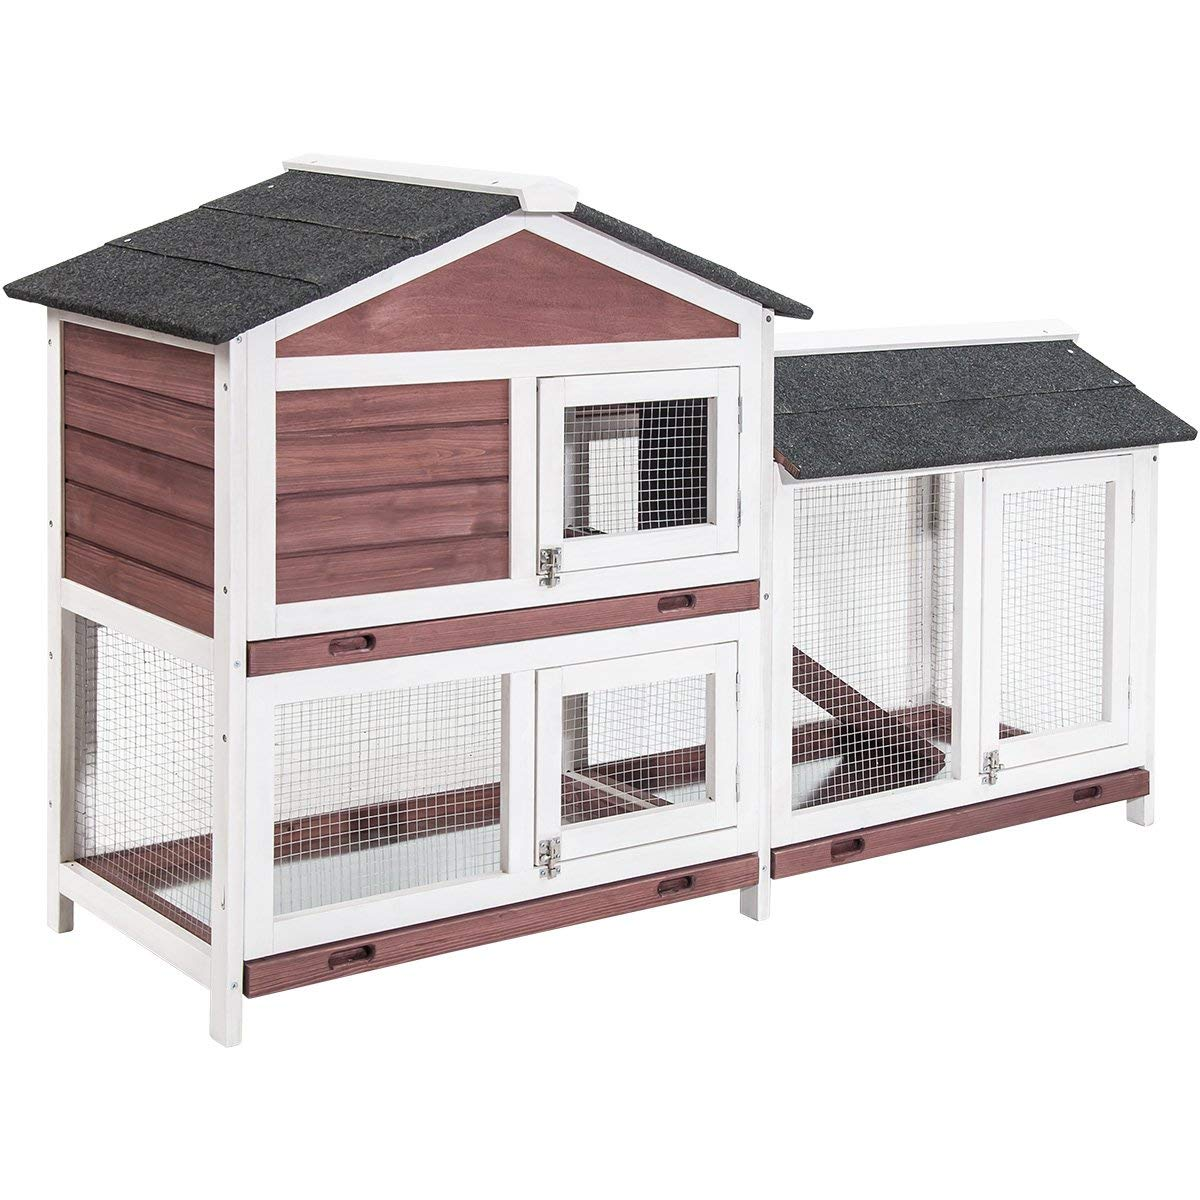 Purlove Pet Rabbit Hutch Wooden House Chicken Coop for Small Animals (Rabbit Hutch #4) by Purlove (Image #3)